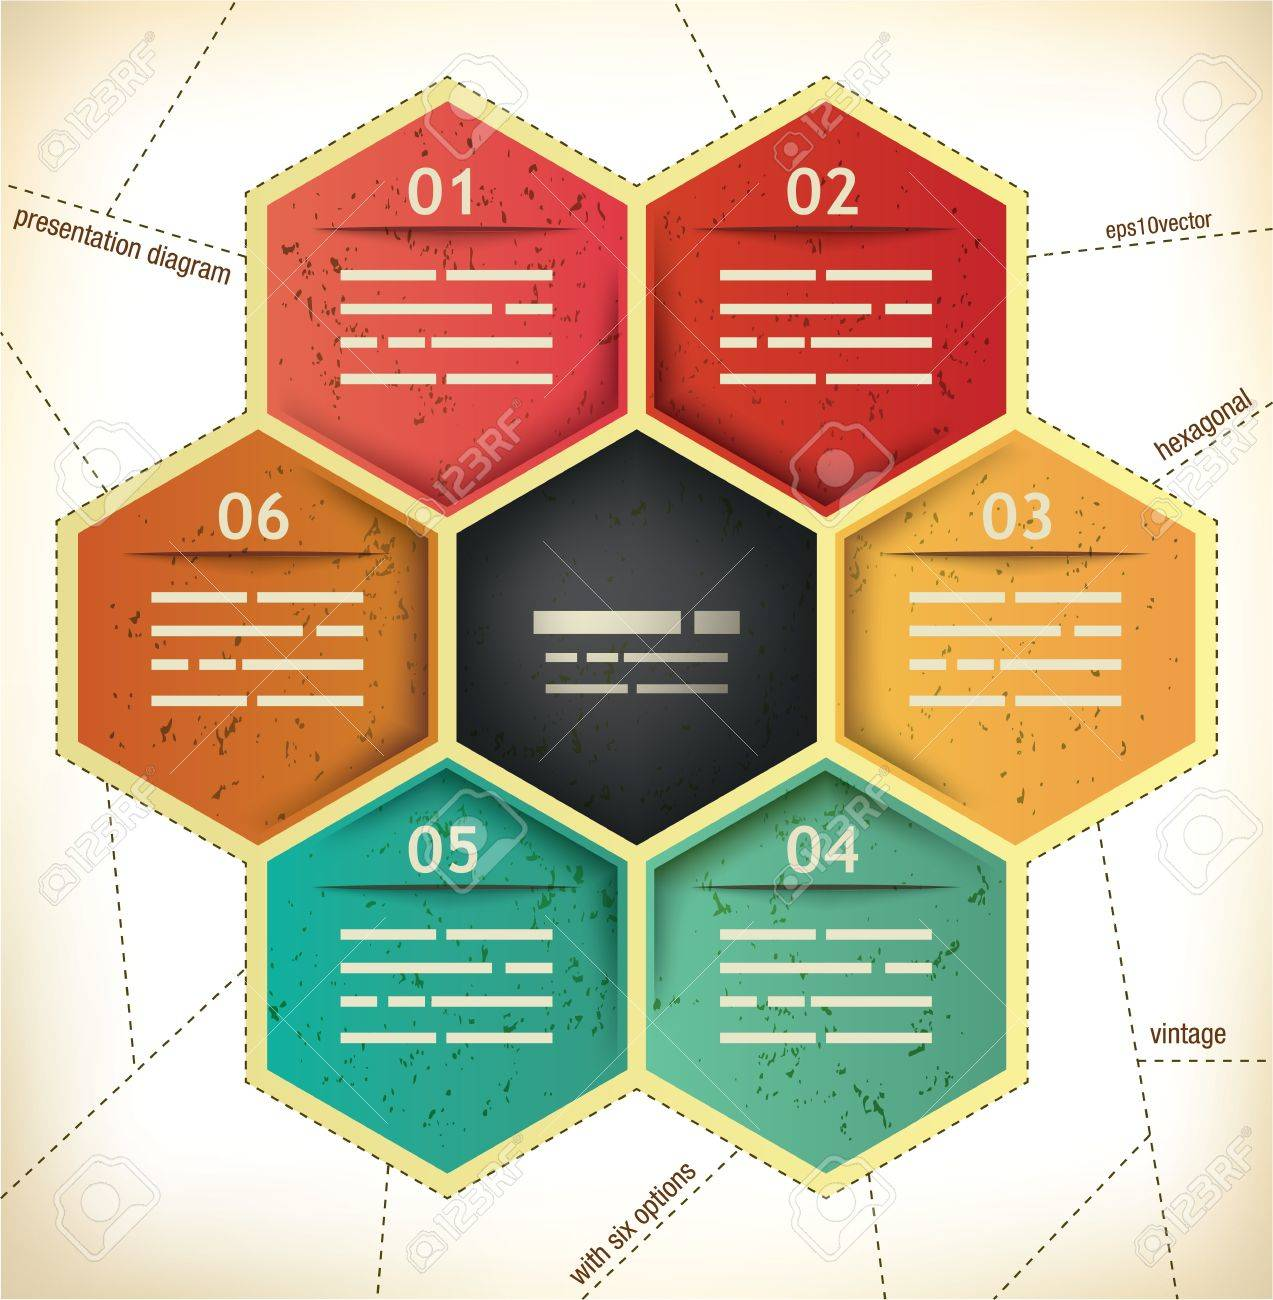 Vintage Presentation Template with six hexagonal spaces for different data Stock Vector - 17984646